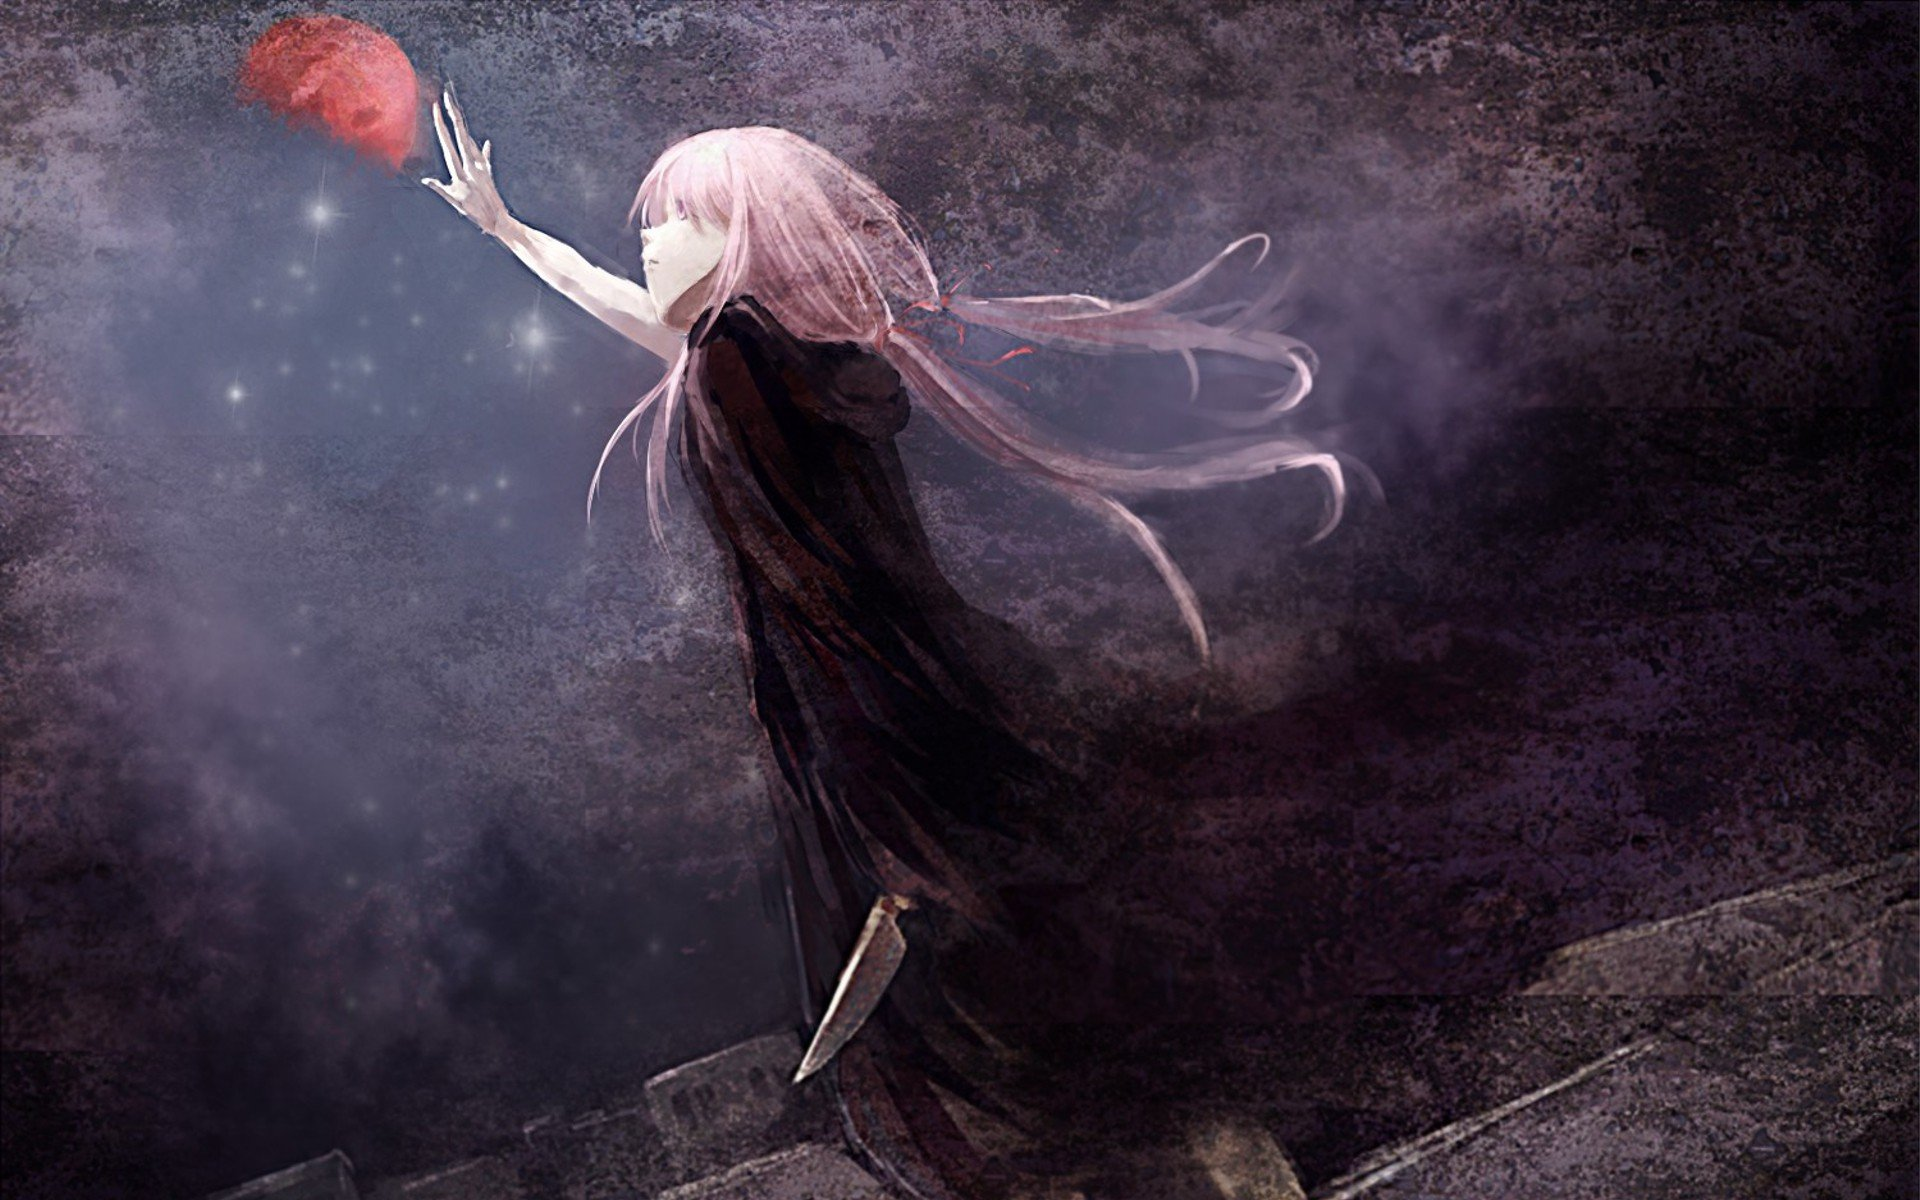 Download hd 1920x1200 Yuno Gasai PC background ID:189893 for free